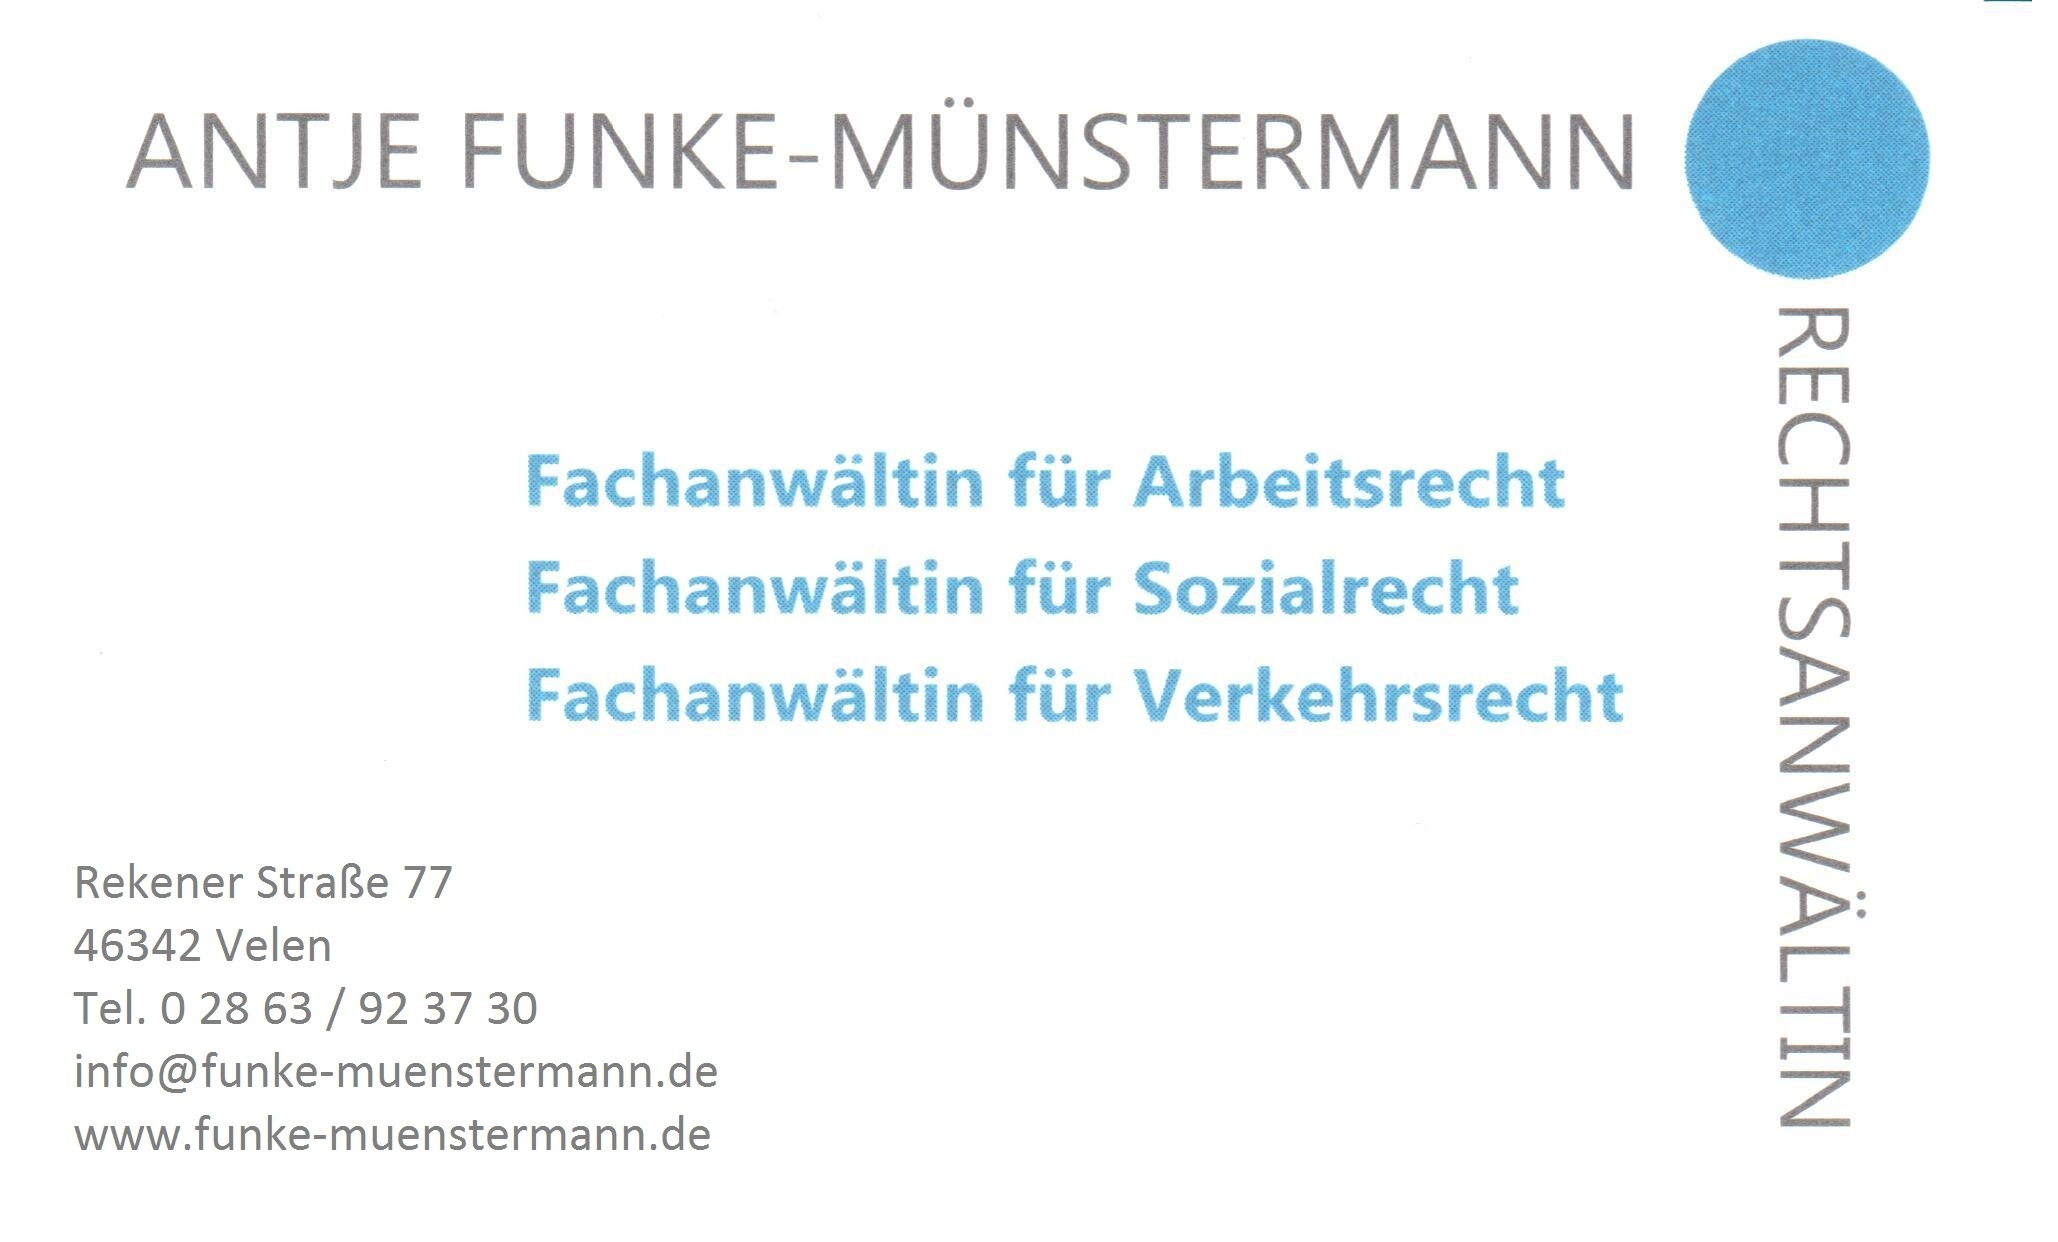 Funke-Münstermann